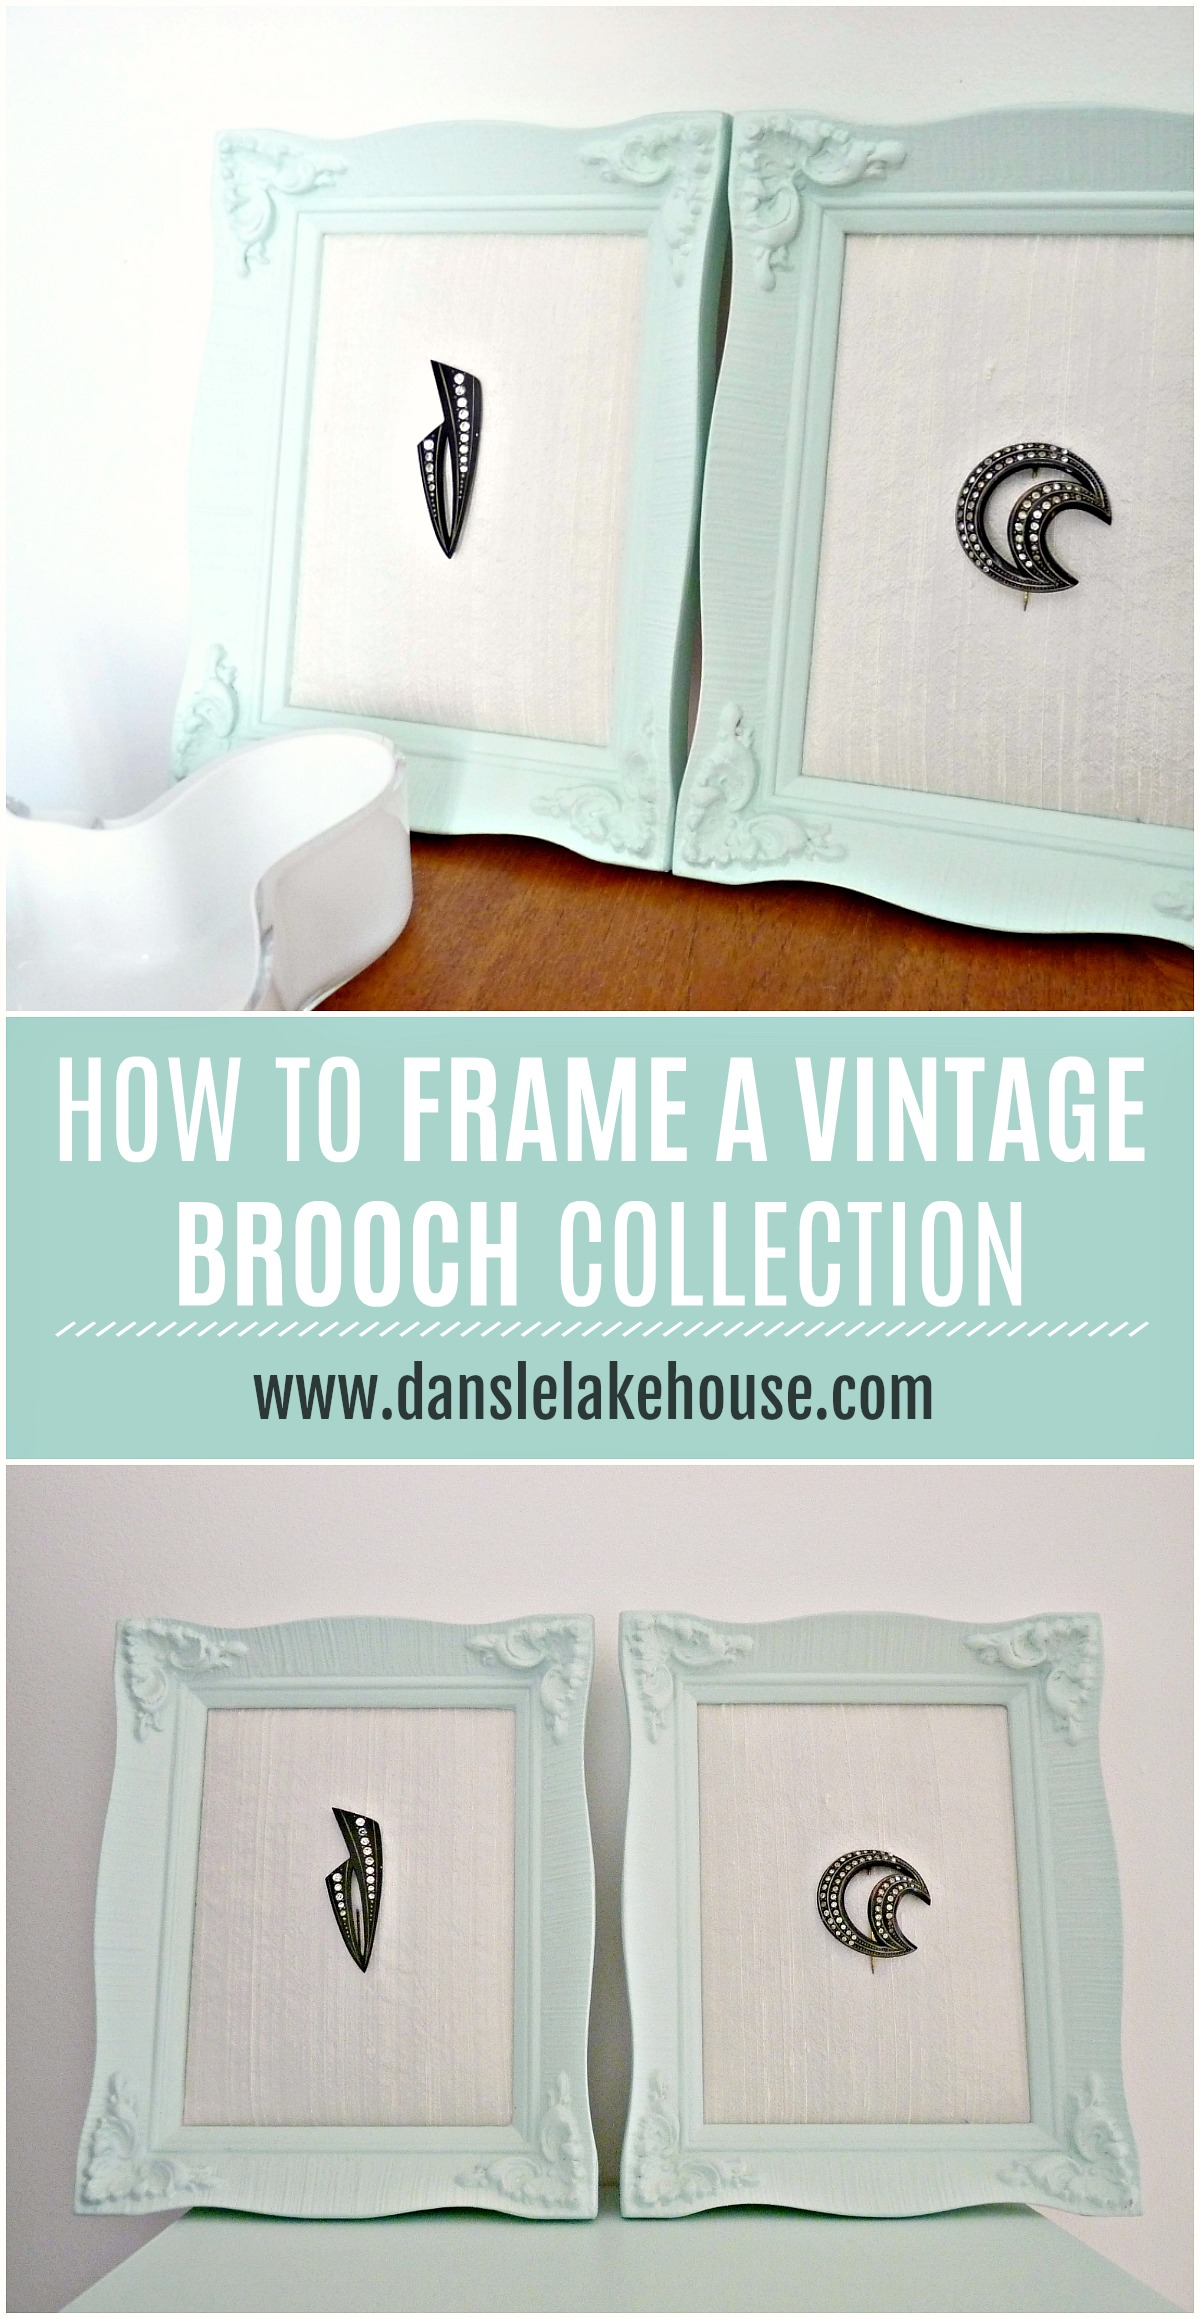 How to Frame a Vintage Brooch Collection